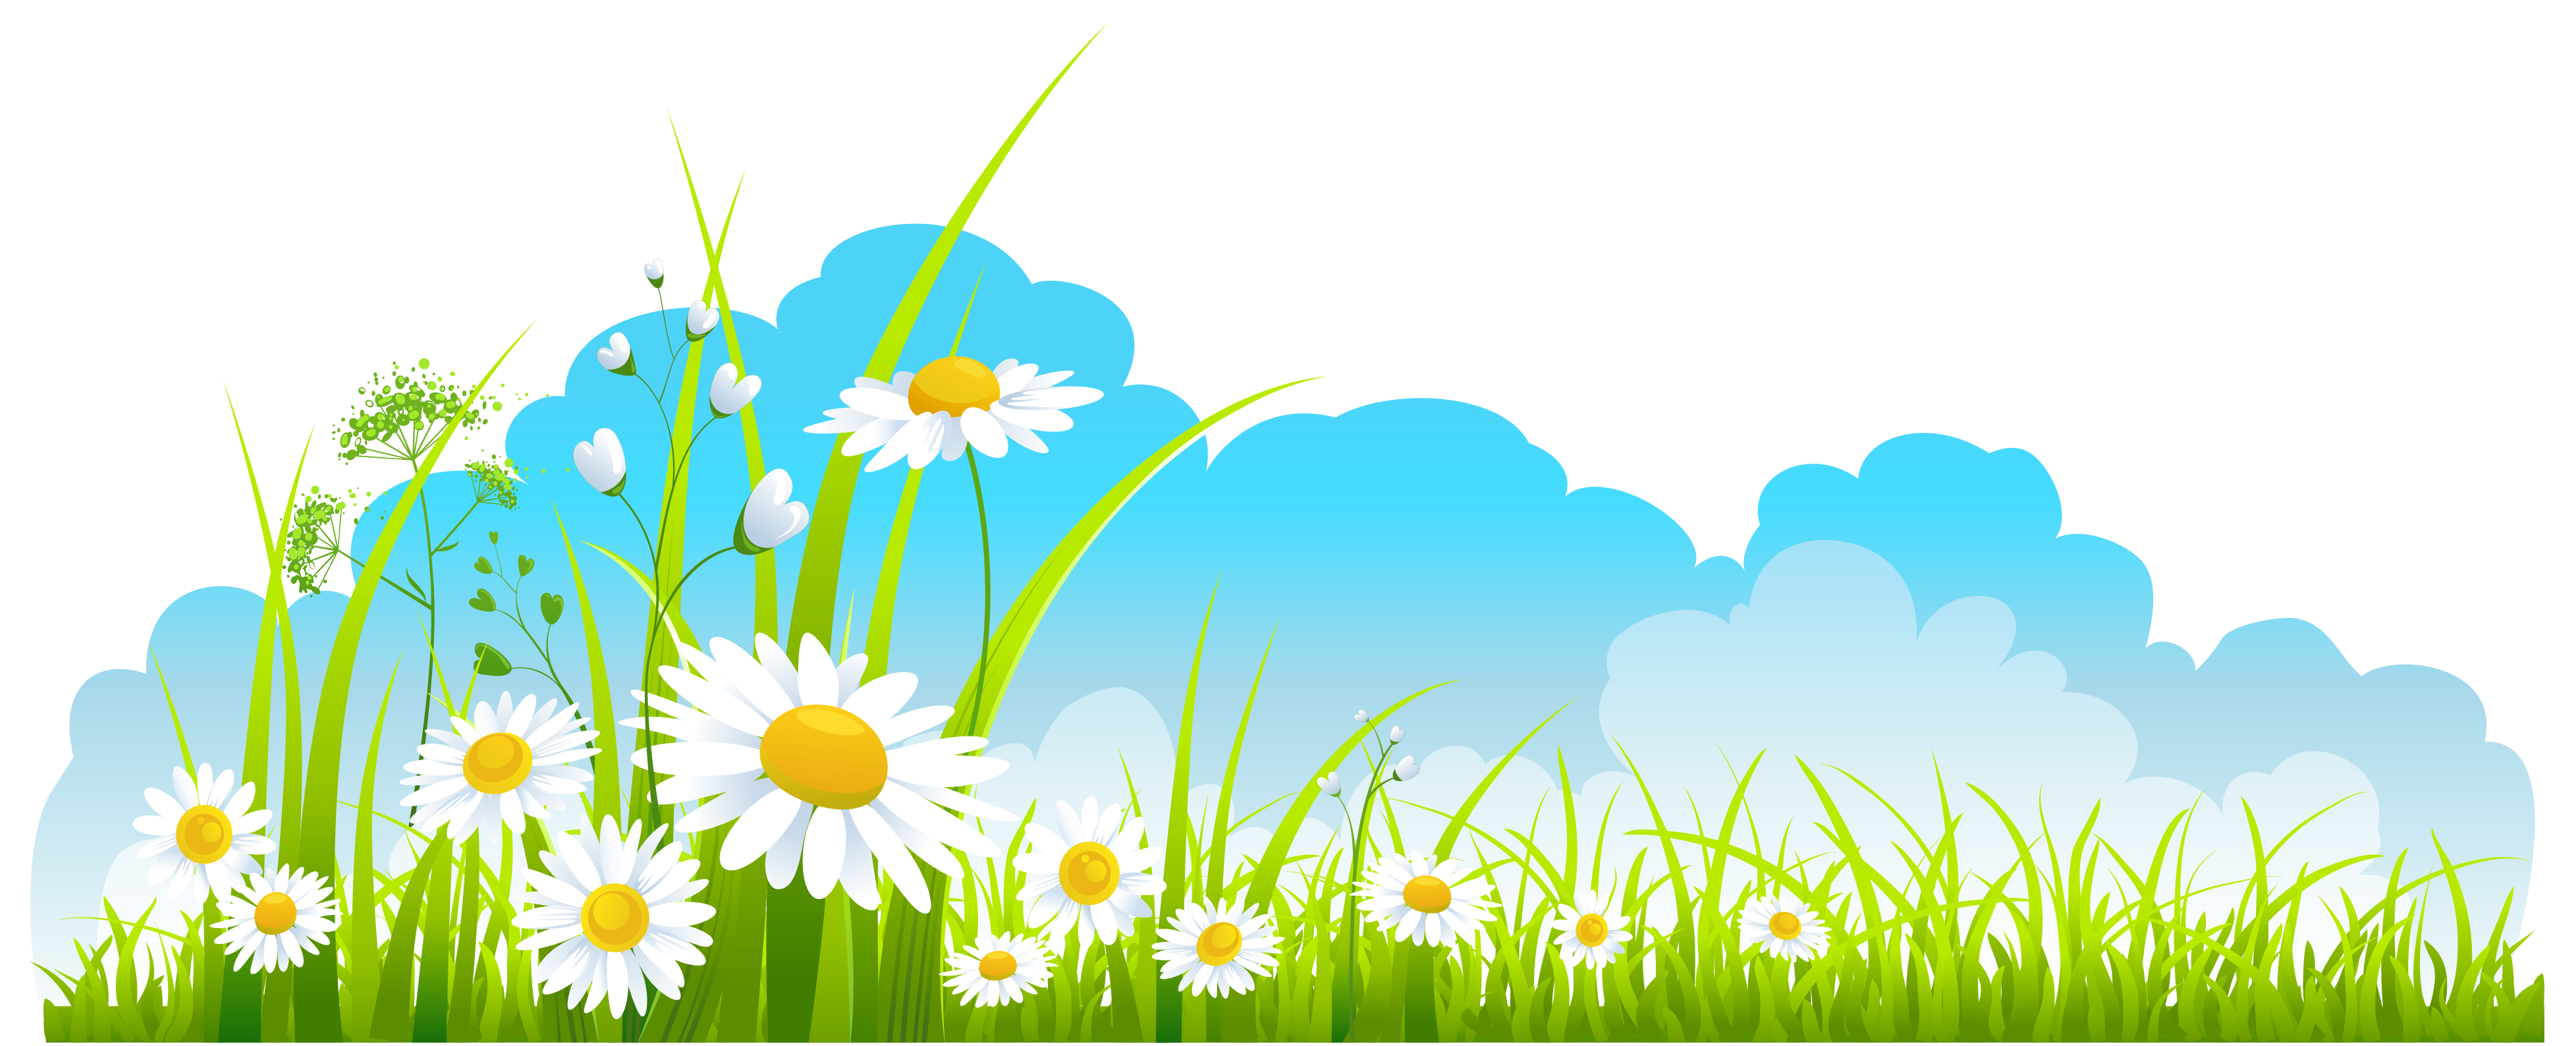 Free Image Of Spring Clipart-Free Image Of Spring Clipart-13